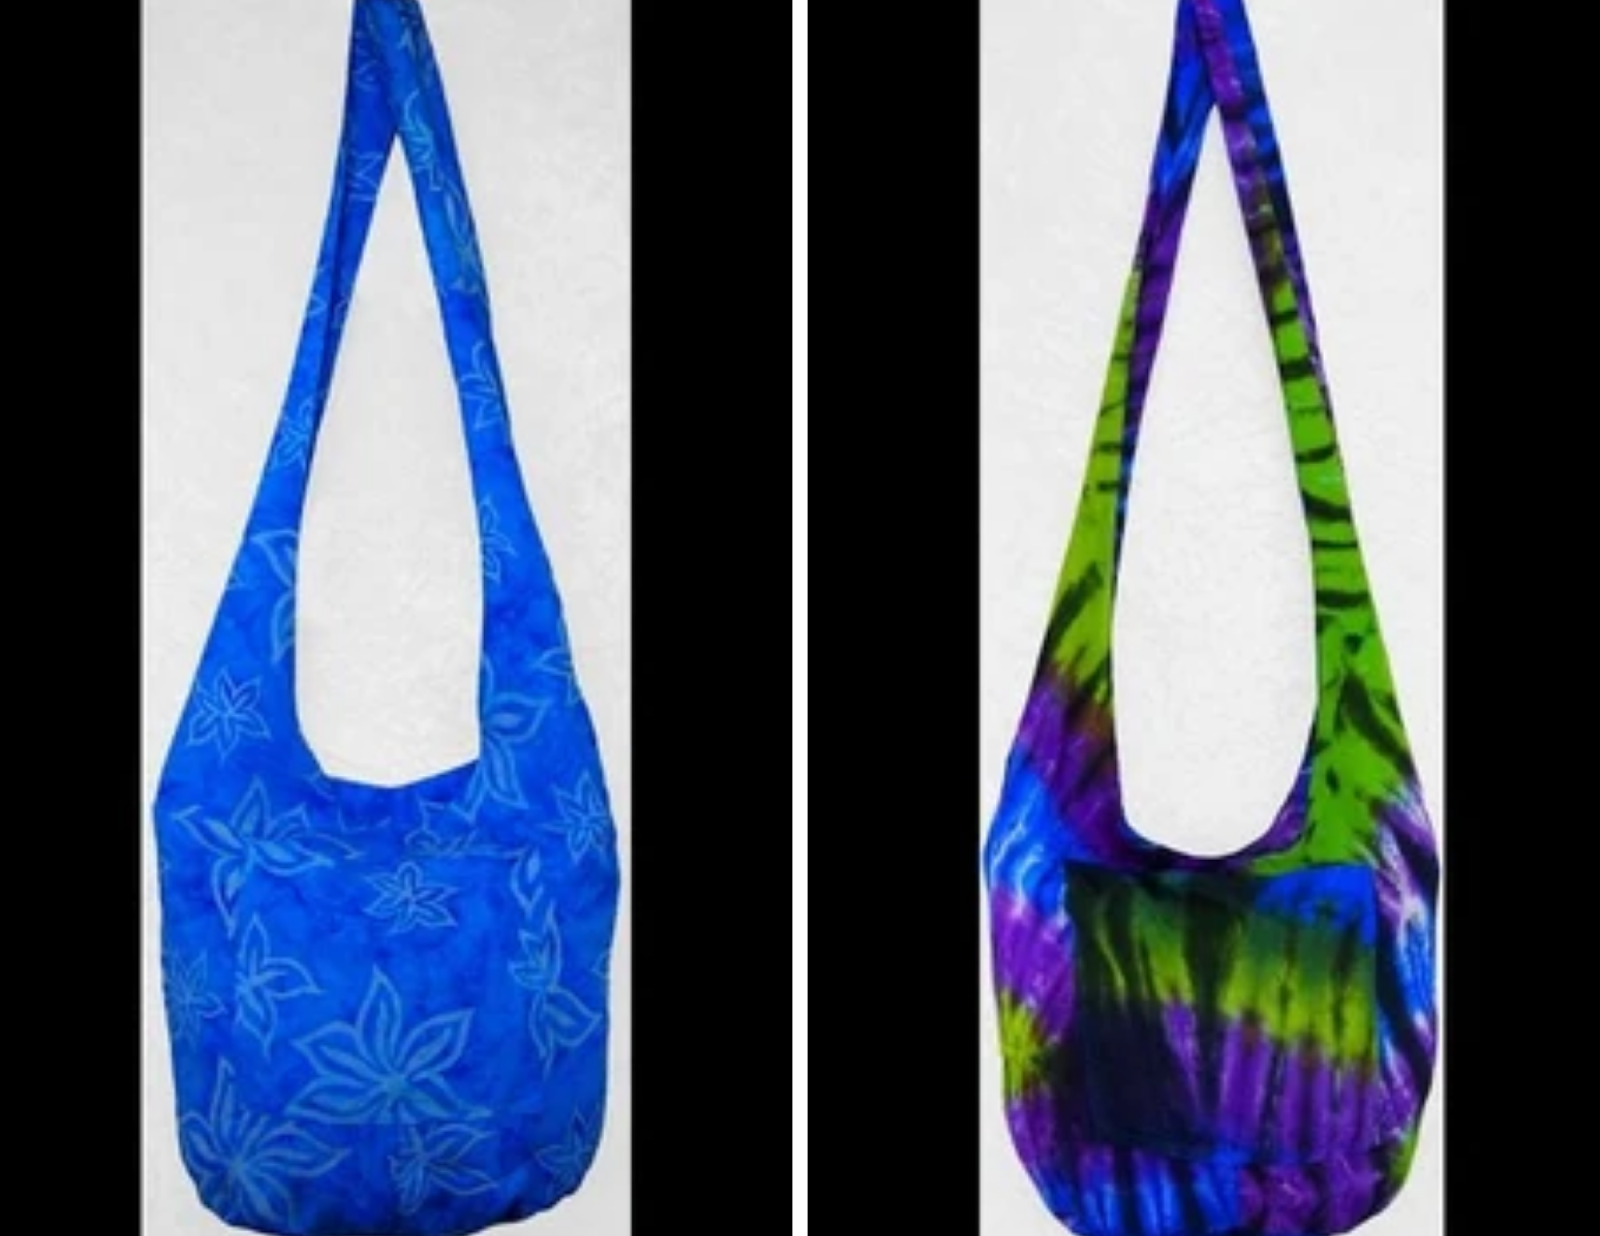 Top Five Tie-dye Bags You Should Be Selling In 2020